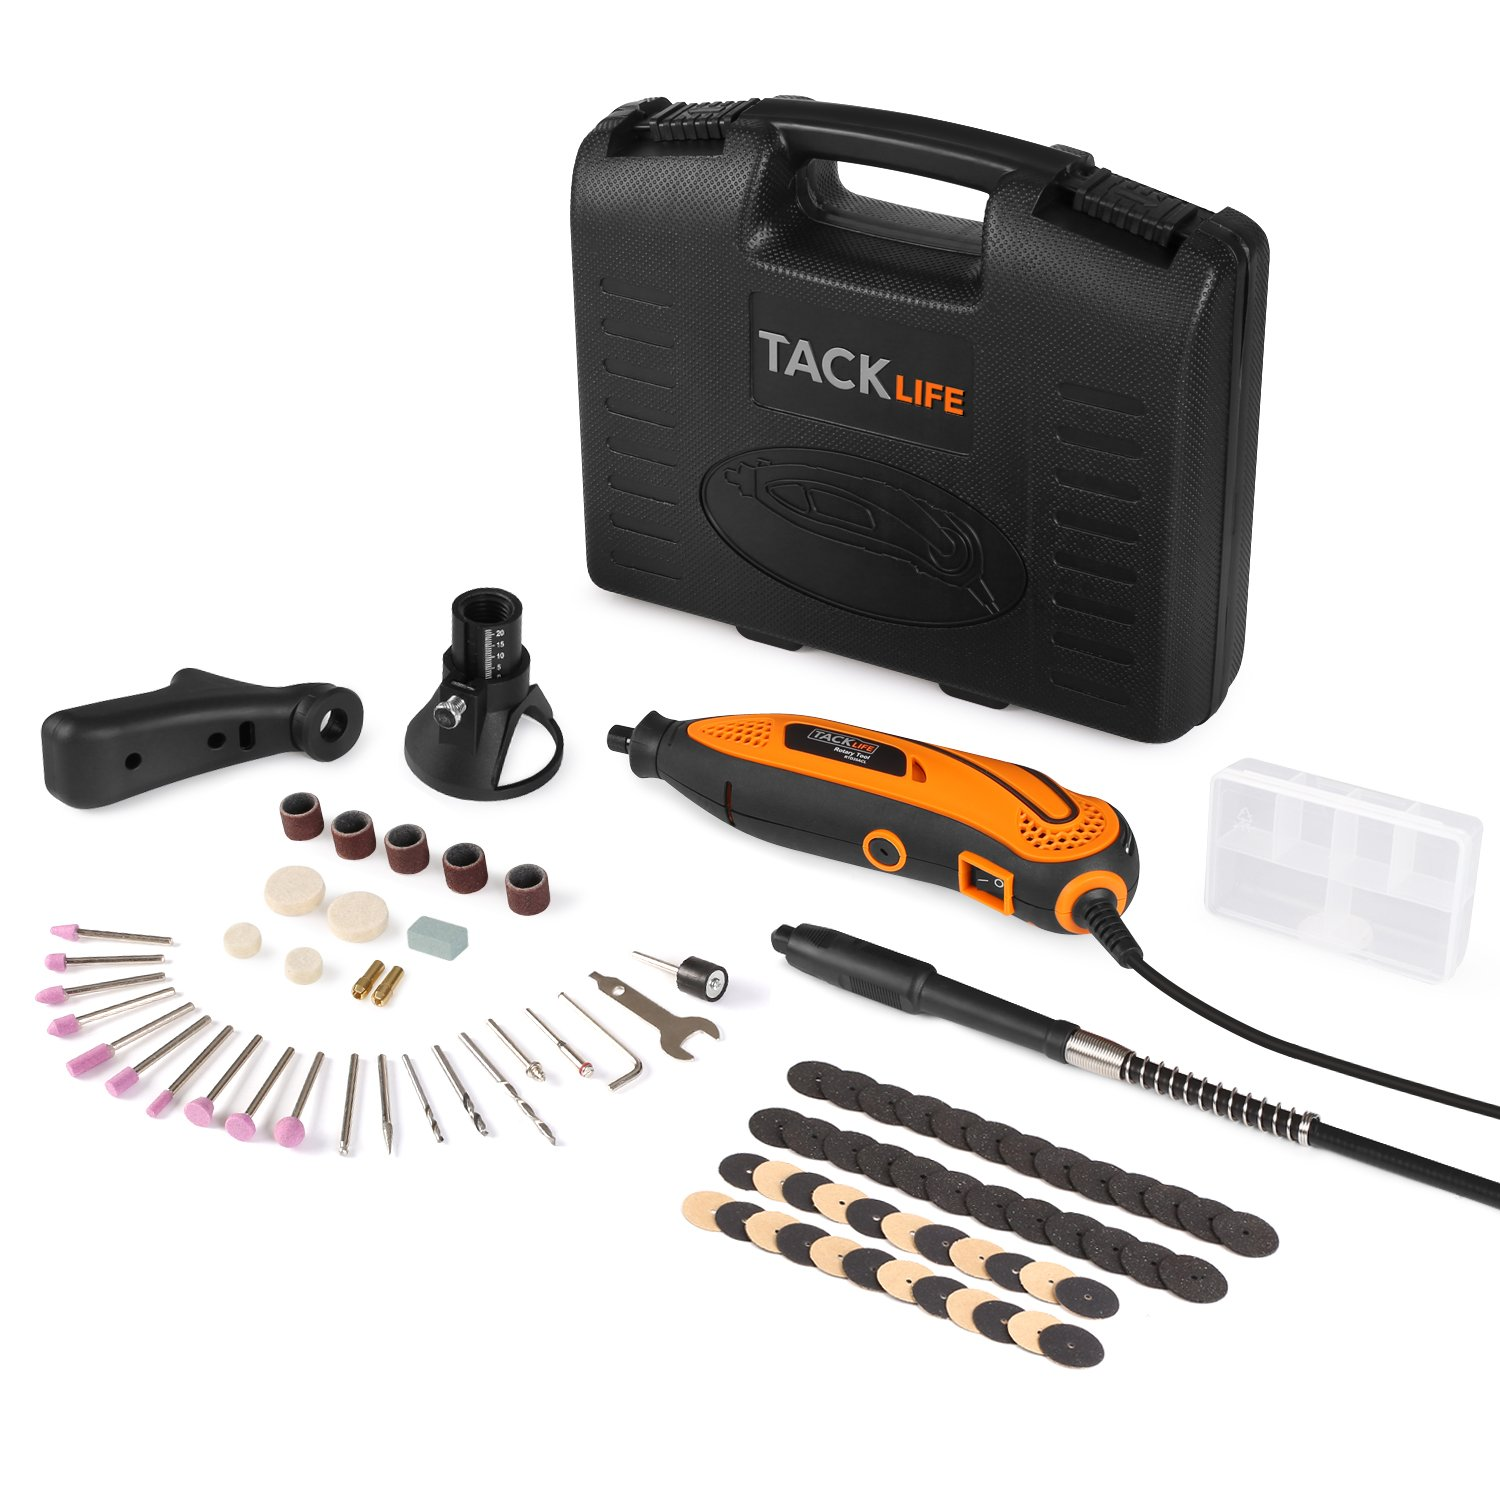 Tacklife Multifunktionswerkzeug amazon